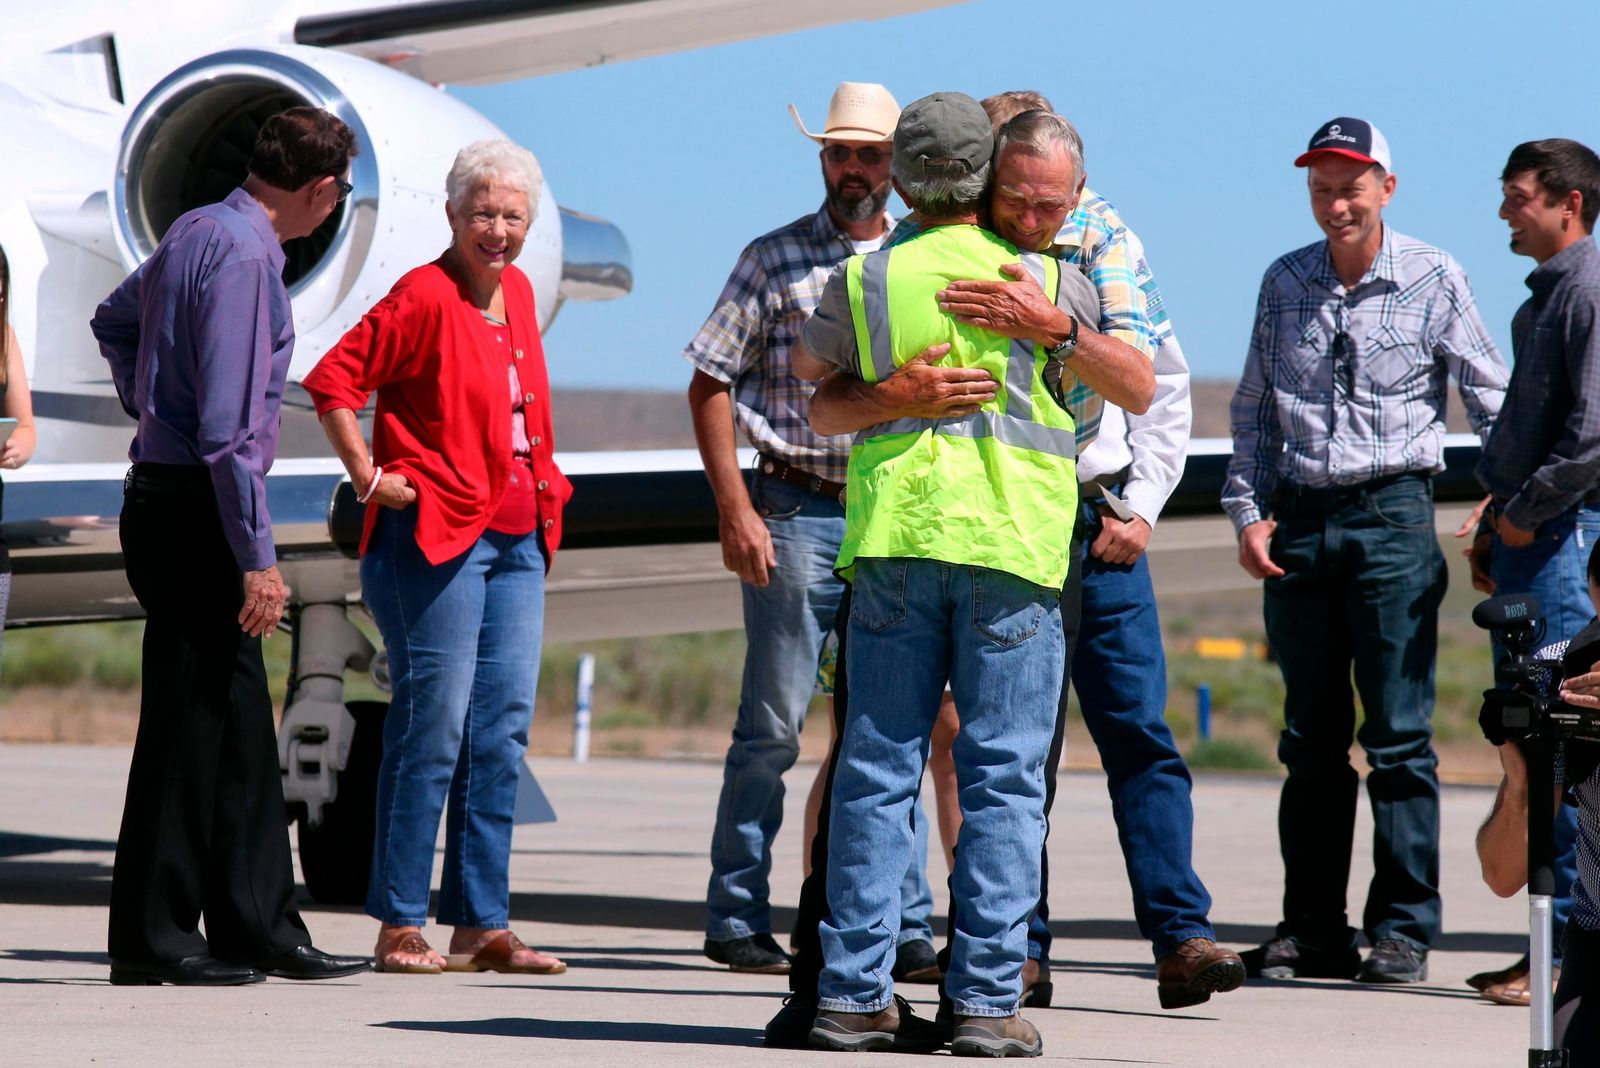 Rancher Dwight Hammond Jr., center, is embraced after arriving by private jet at the Burns Municipal Airport, Wednesday, July 11, 2018, in Burns, Ore. Hammond and his son Steven, convicted of intentionally setting fires on public land in Oregon, were pardoned by President Donald Trump on Tuesday, July 10. (Beth Nakamura/The Oregonian via AP)